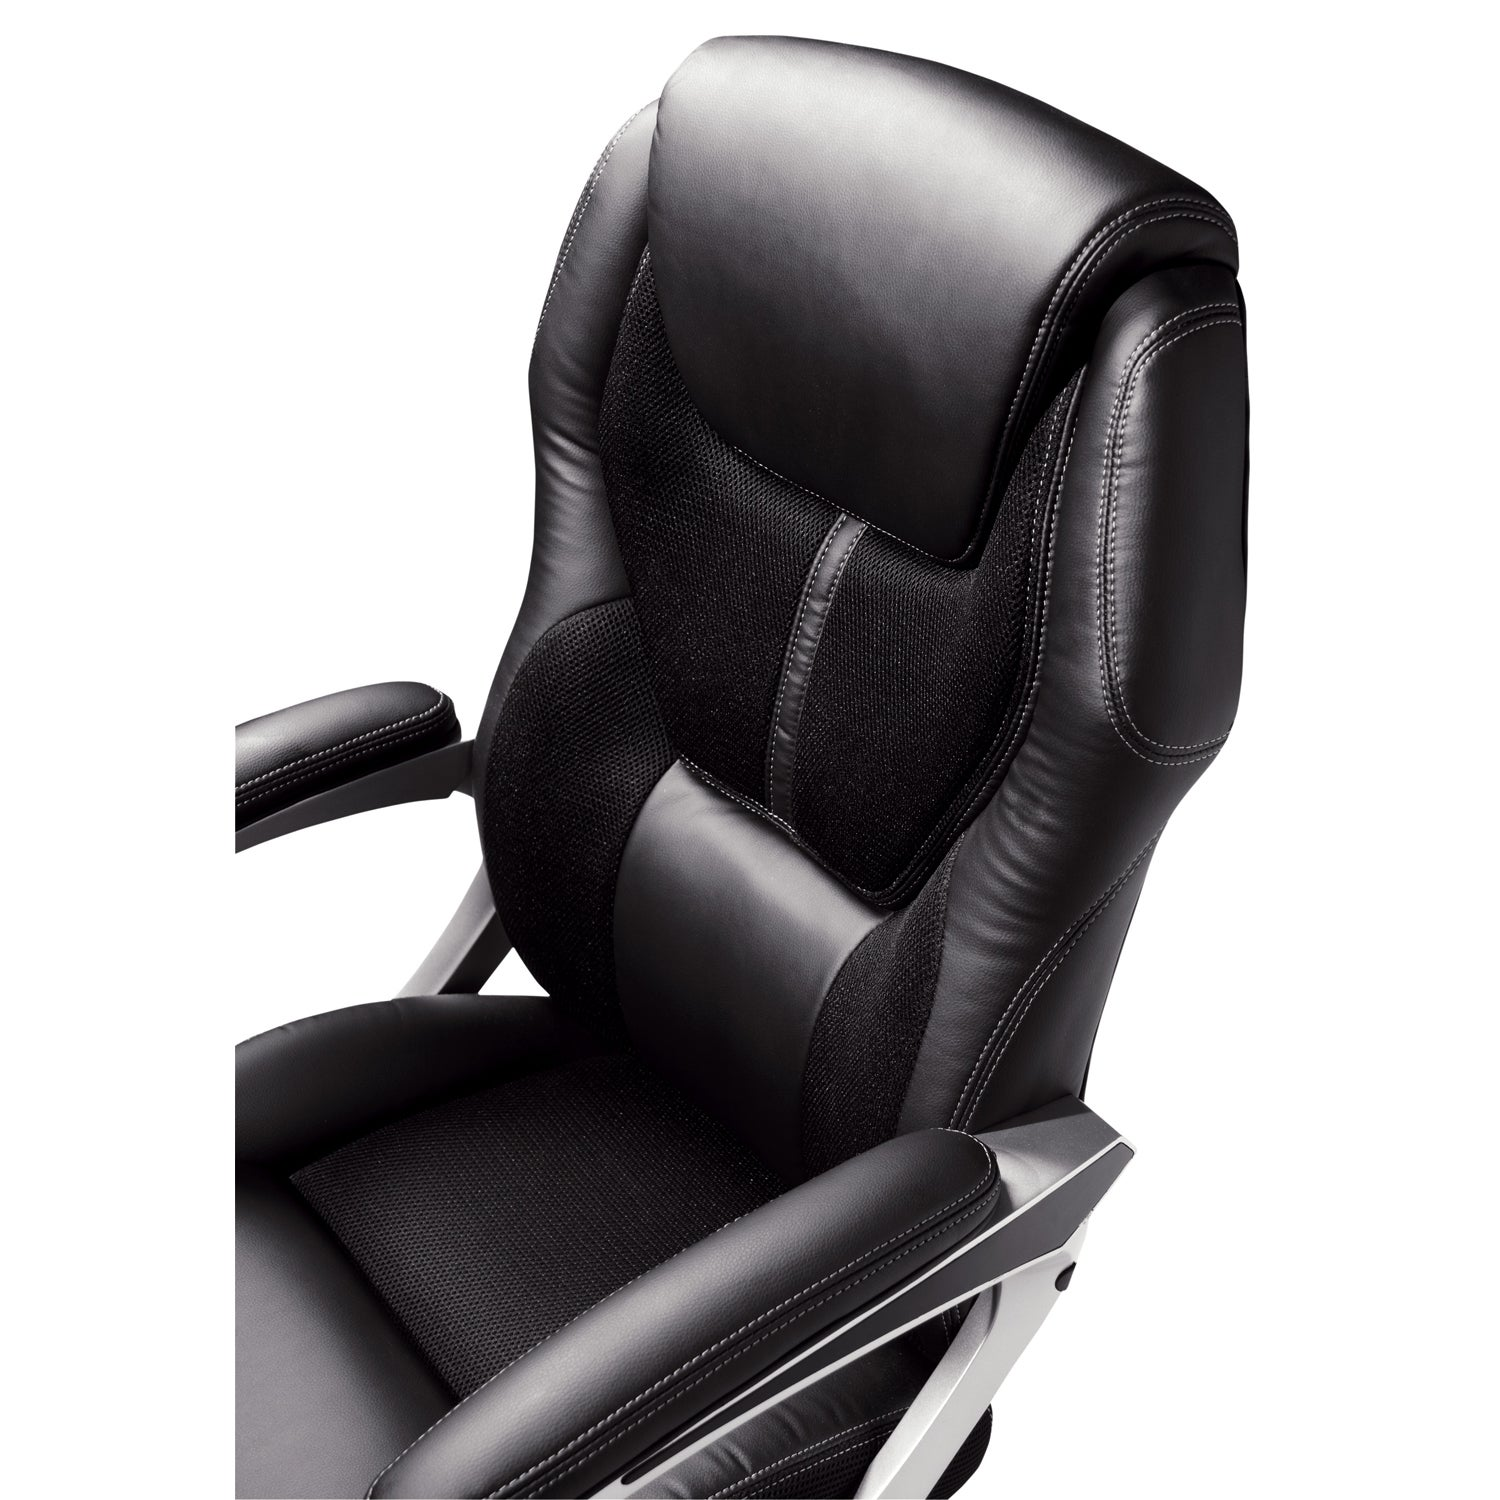 Serta Black Puresoft Faux Leather And Mesh Executive Office Chair   Free  Shipping Today   Overstock   16241317